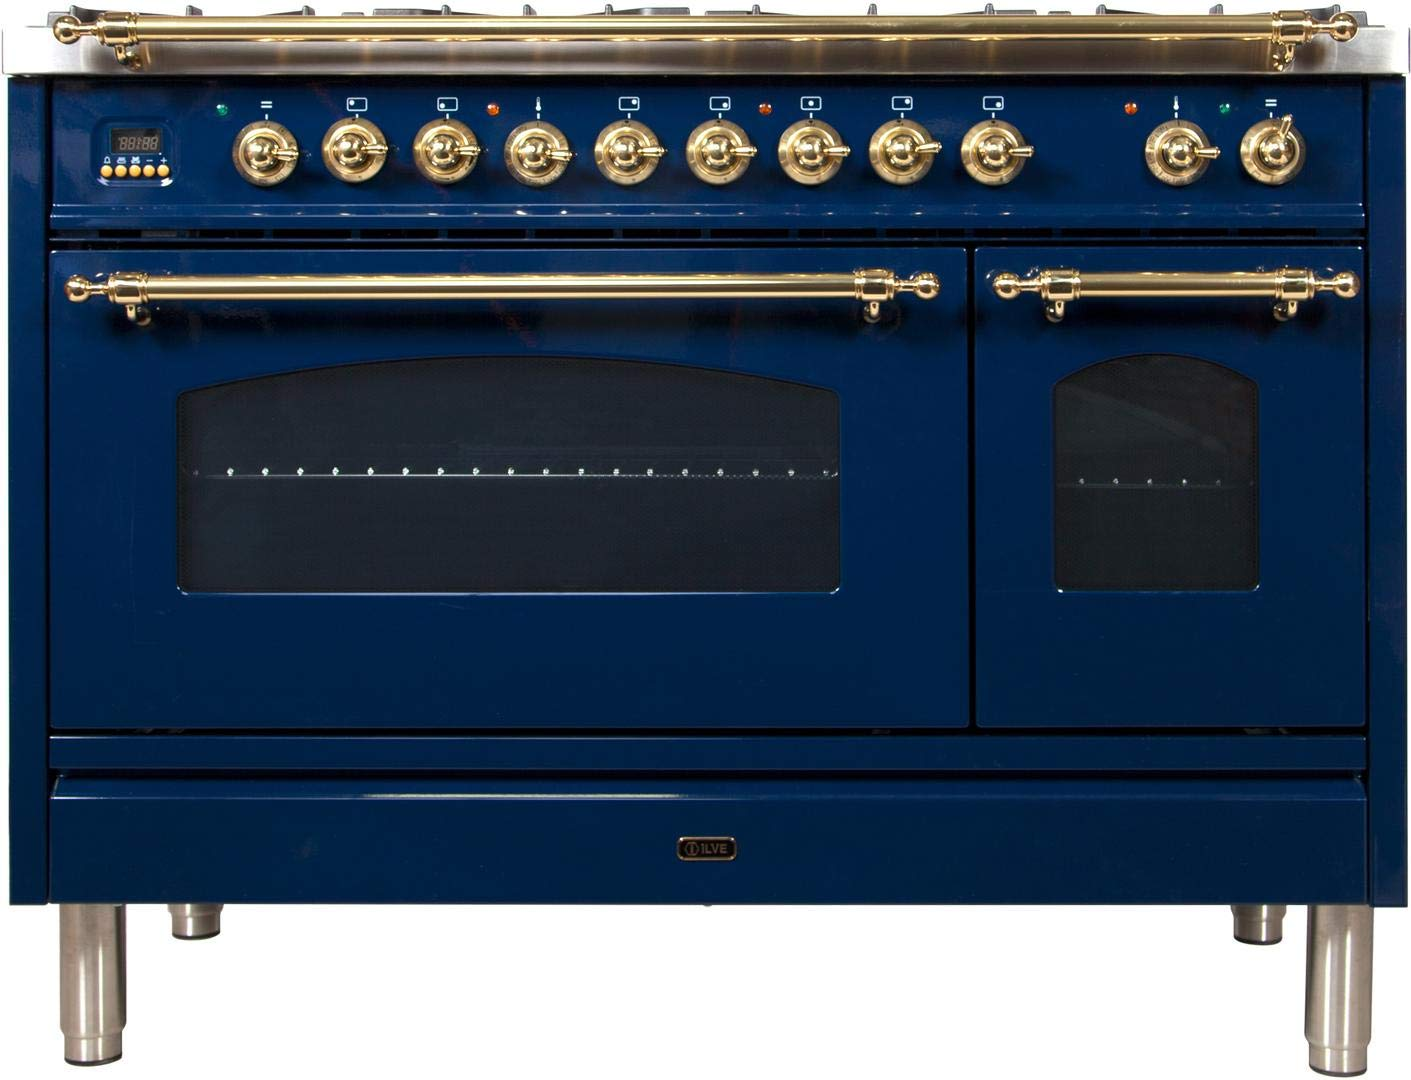 Ilve UPN120FDMPBL Nostalgie Series 48 Inch Dual Fuel Convection Freestanding Range, 7 Sealed Brass Burners, 5 cu.ft. Total Oven Capacity in Blue, Brass Trim (Natural Gas)